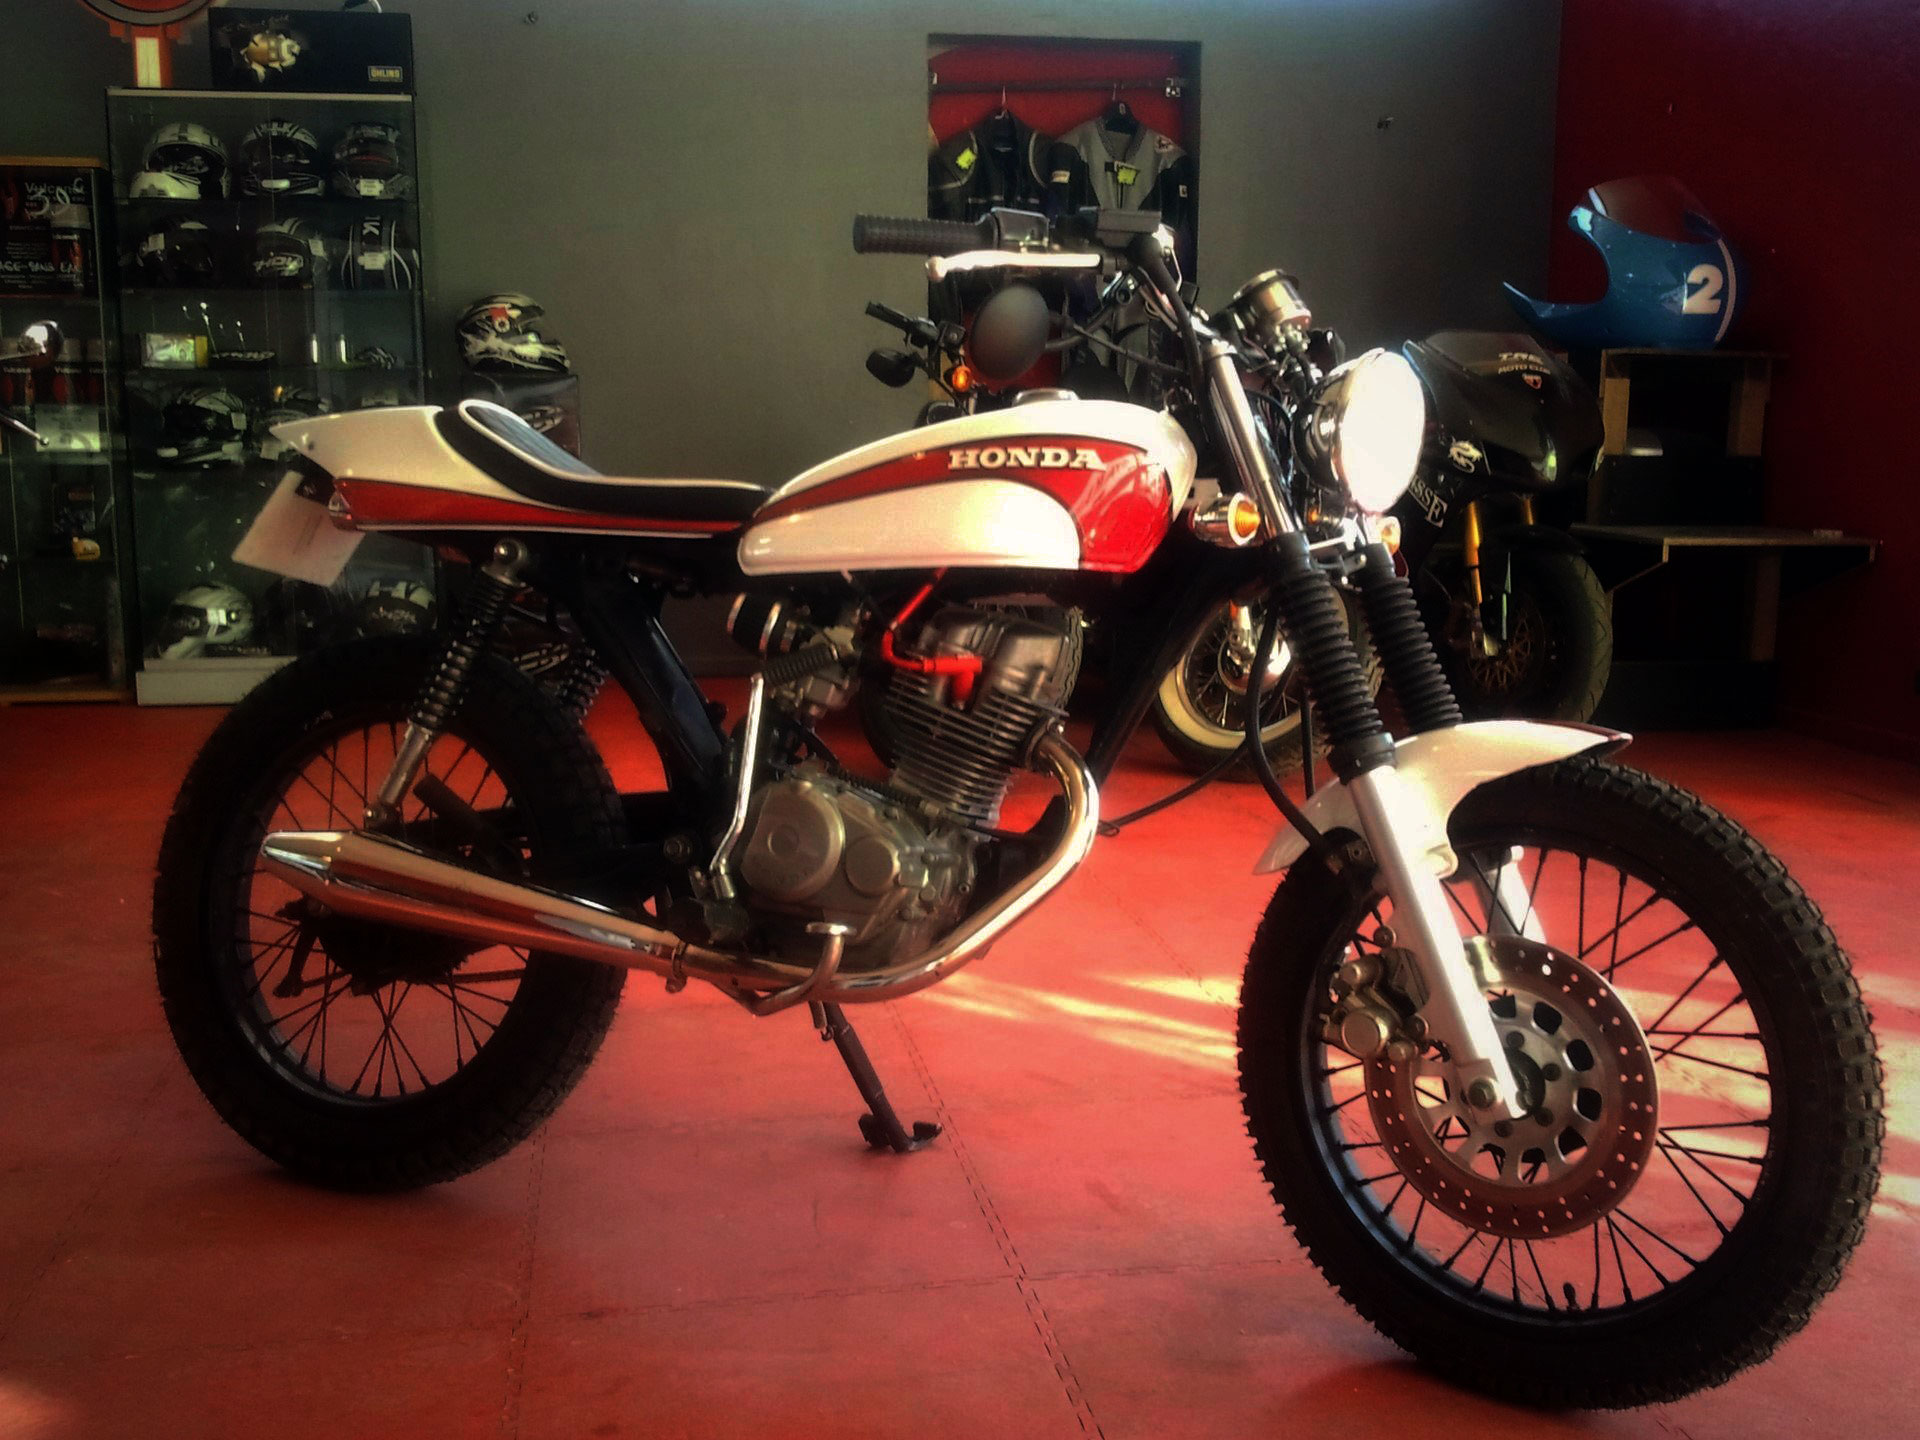 HONDA 125 CG - MODE TRACKER